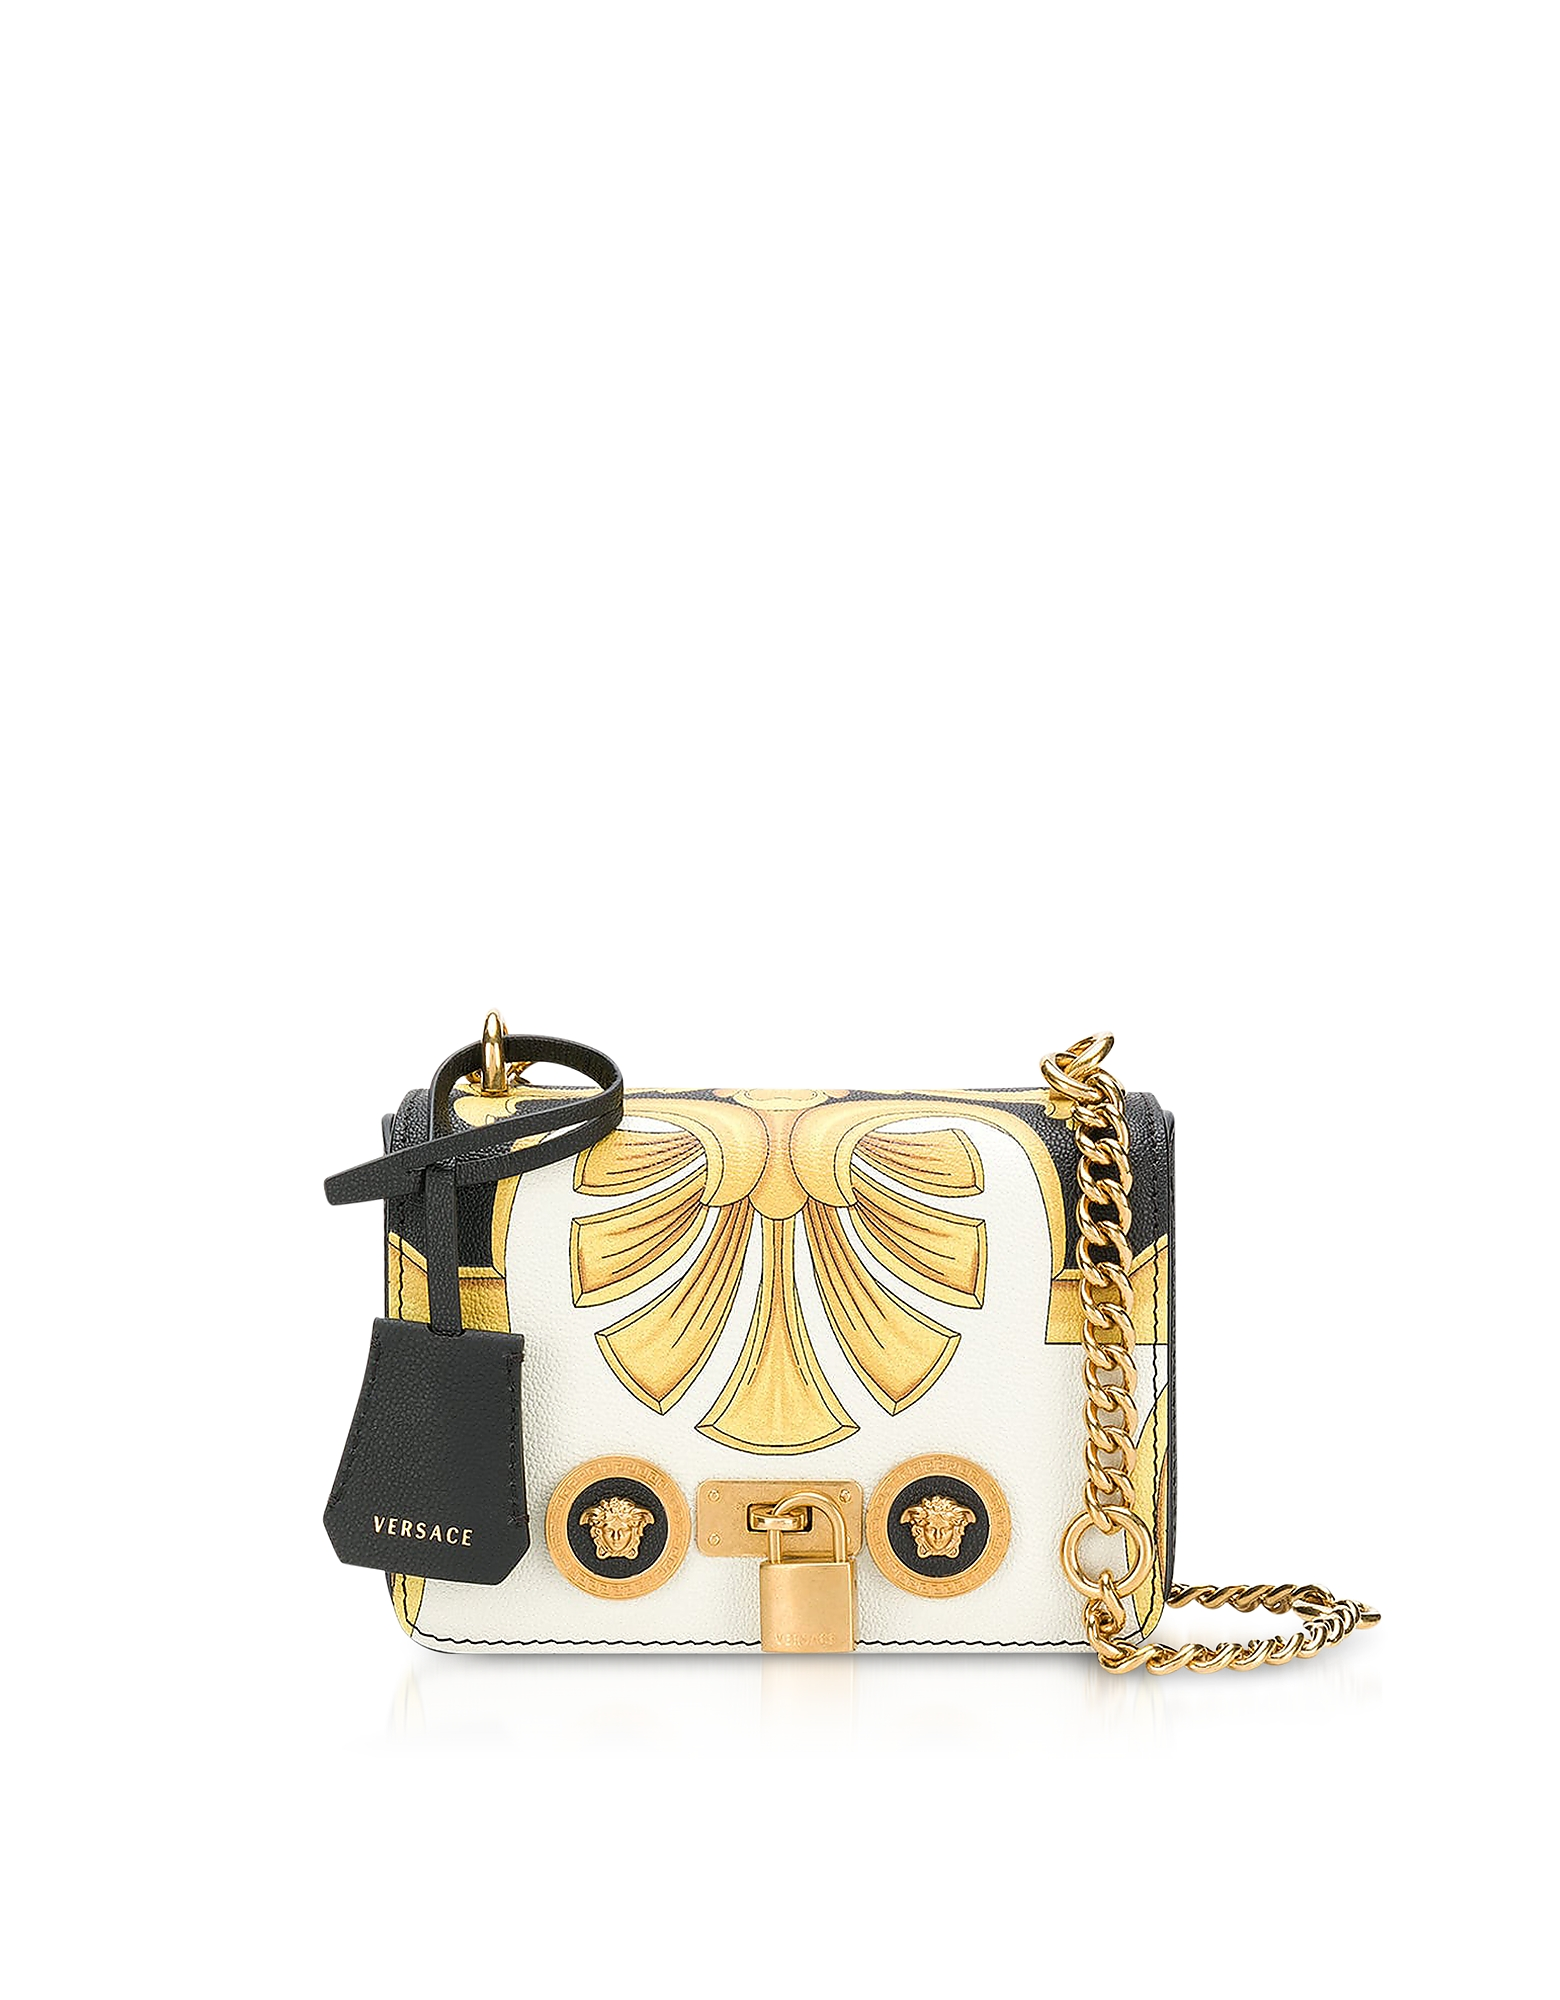 Versace Handbags, Barocco Printed Leather Shoulder Bag